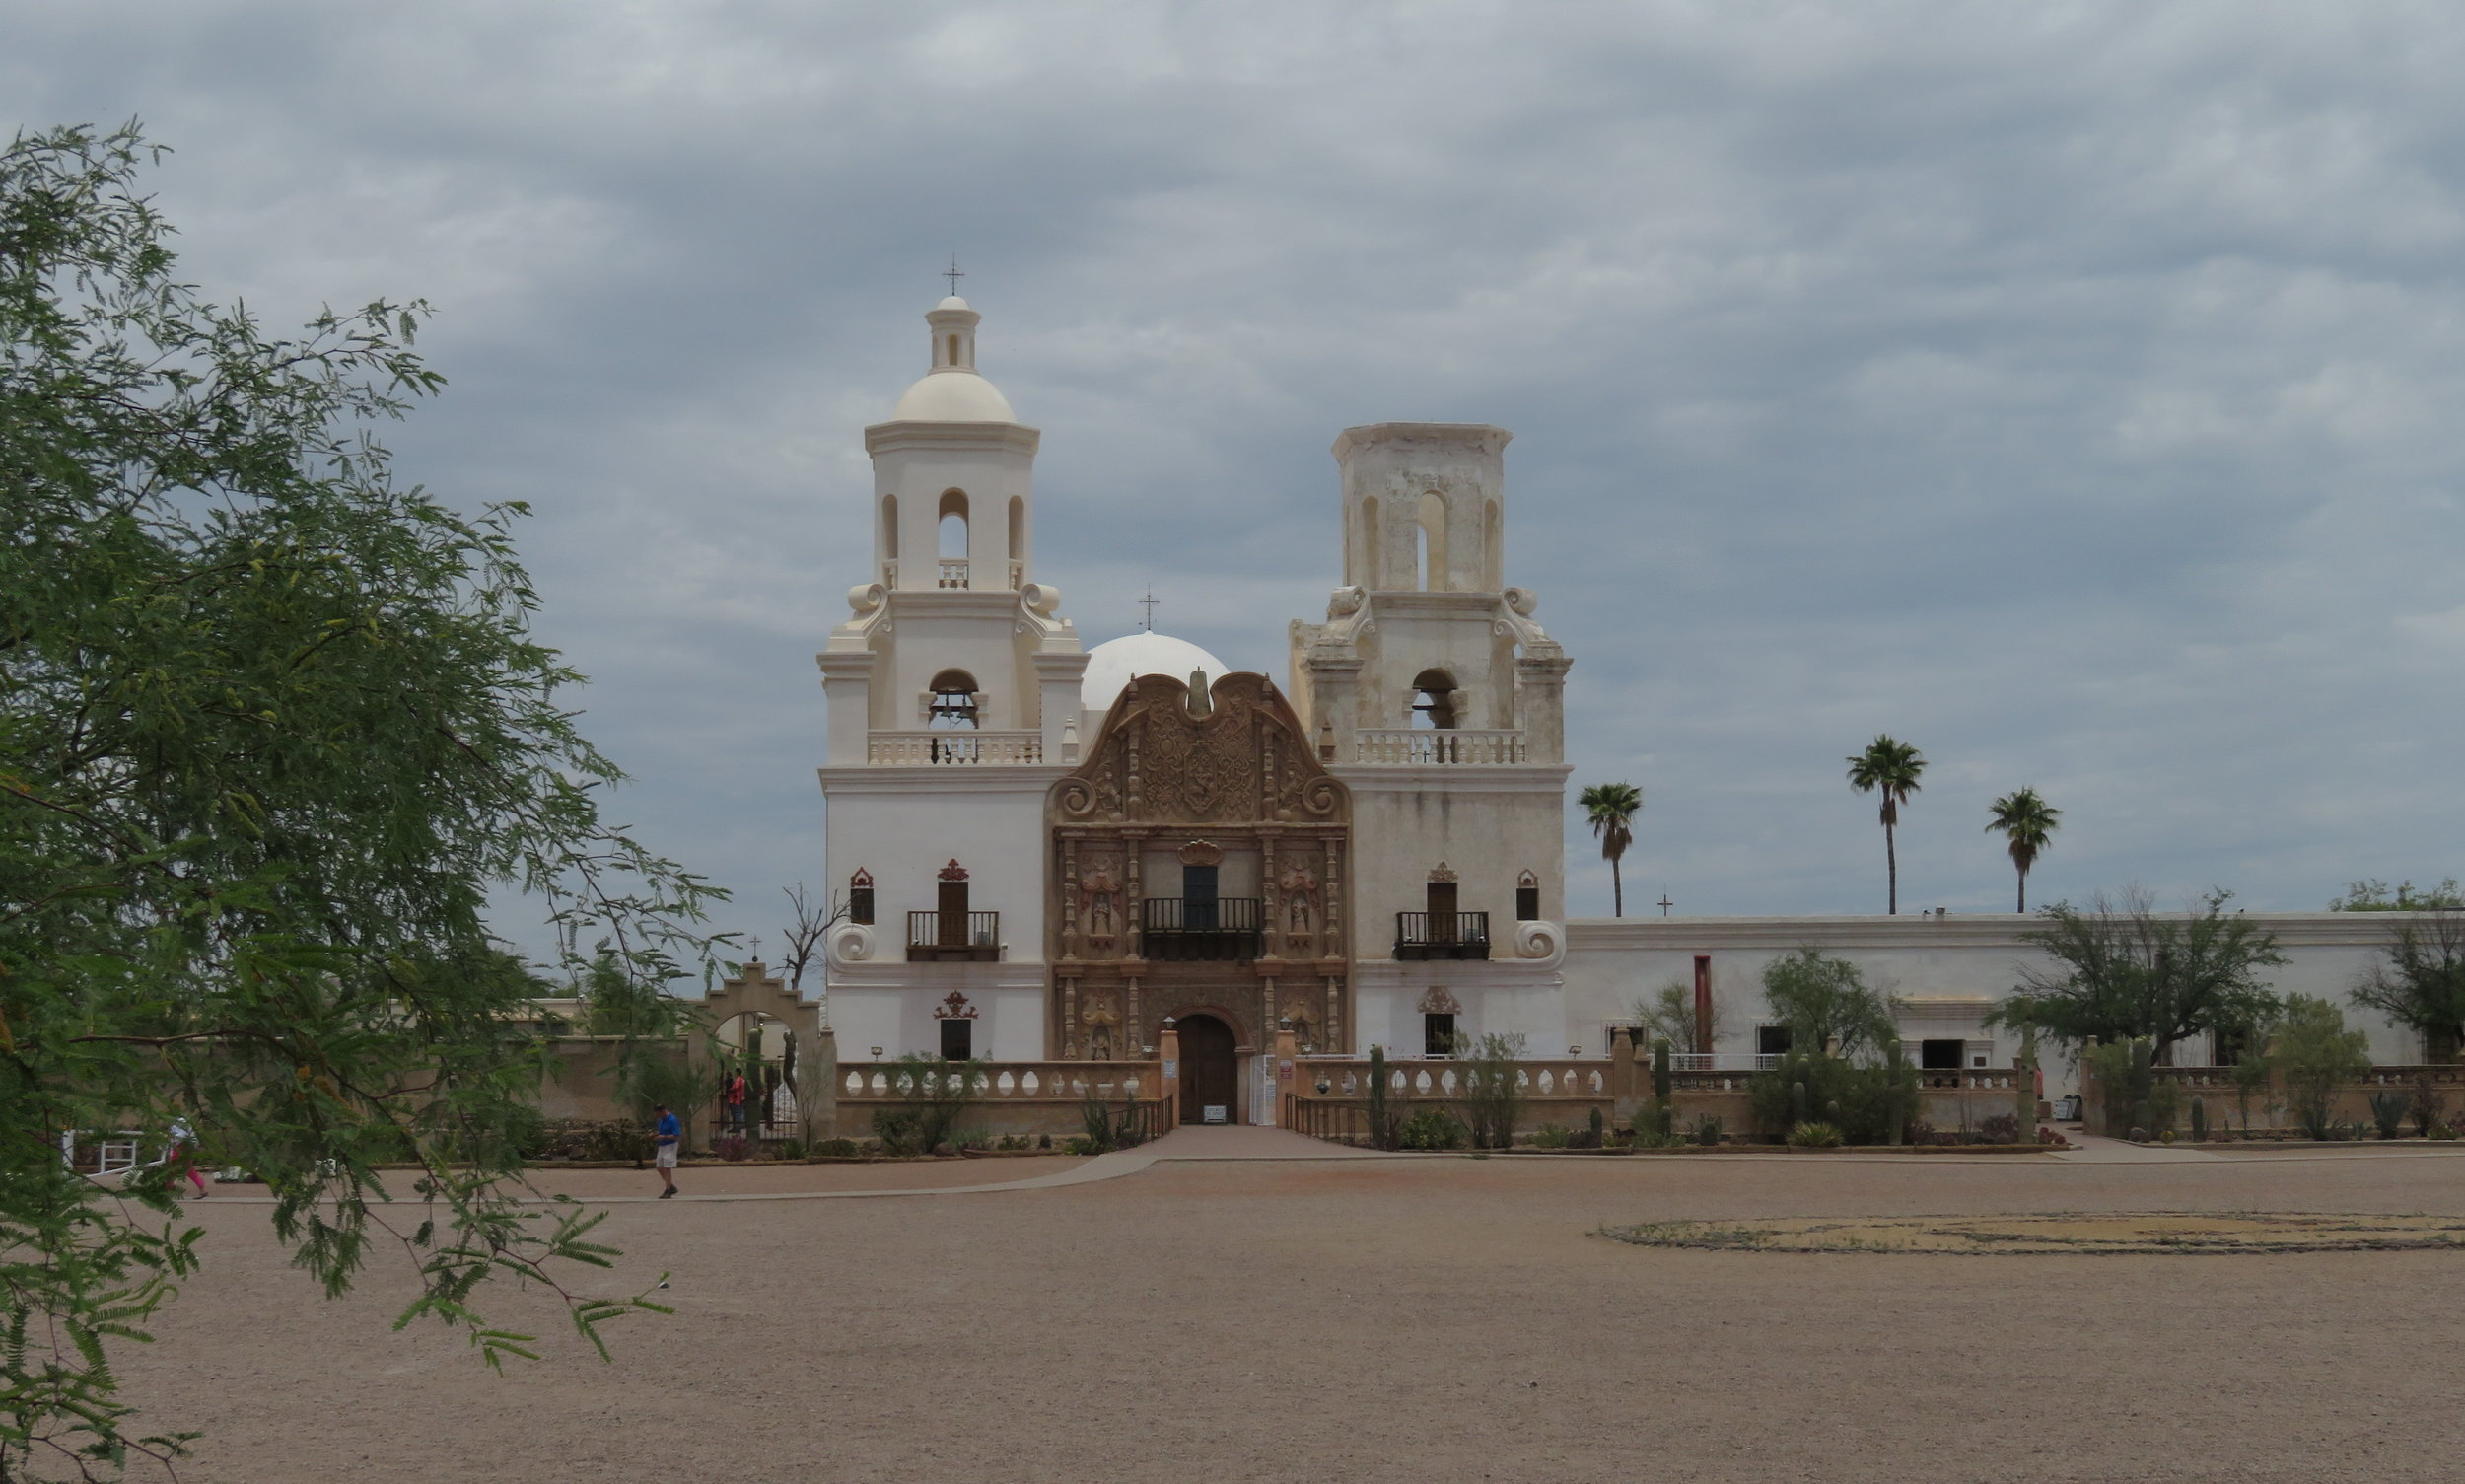 Mission San Xavier del Bac is considered the finest example of Mexican Baroque architecture in the USA.